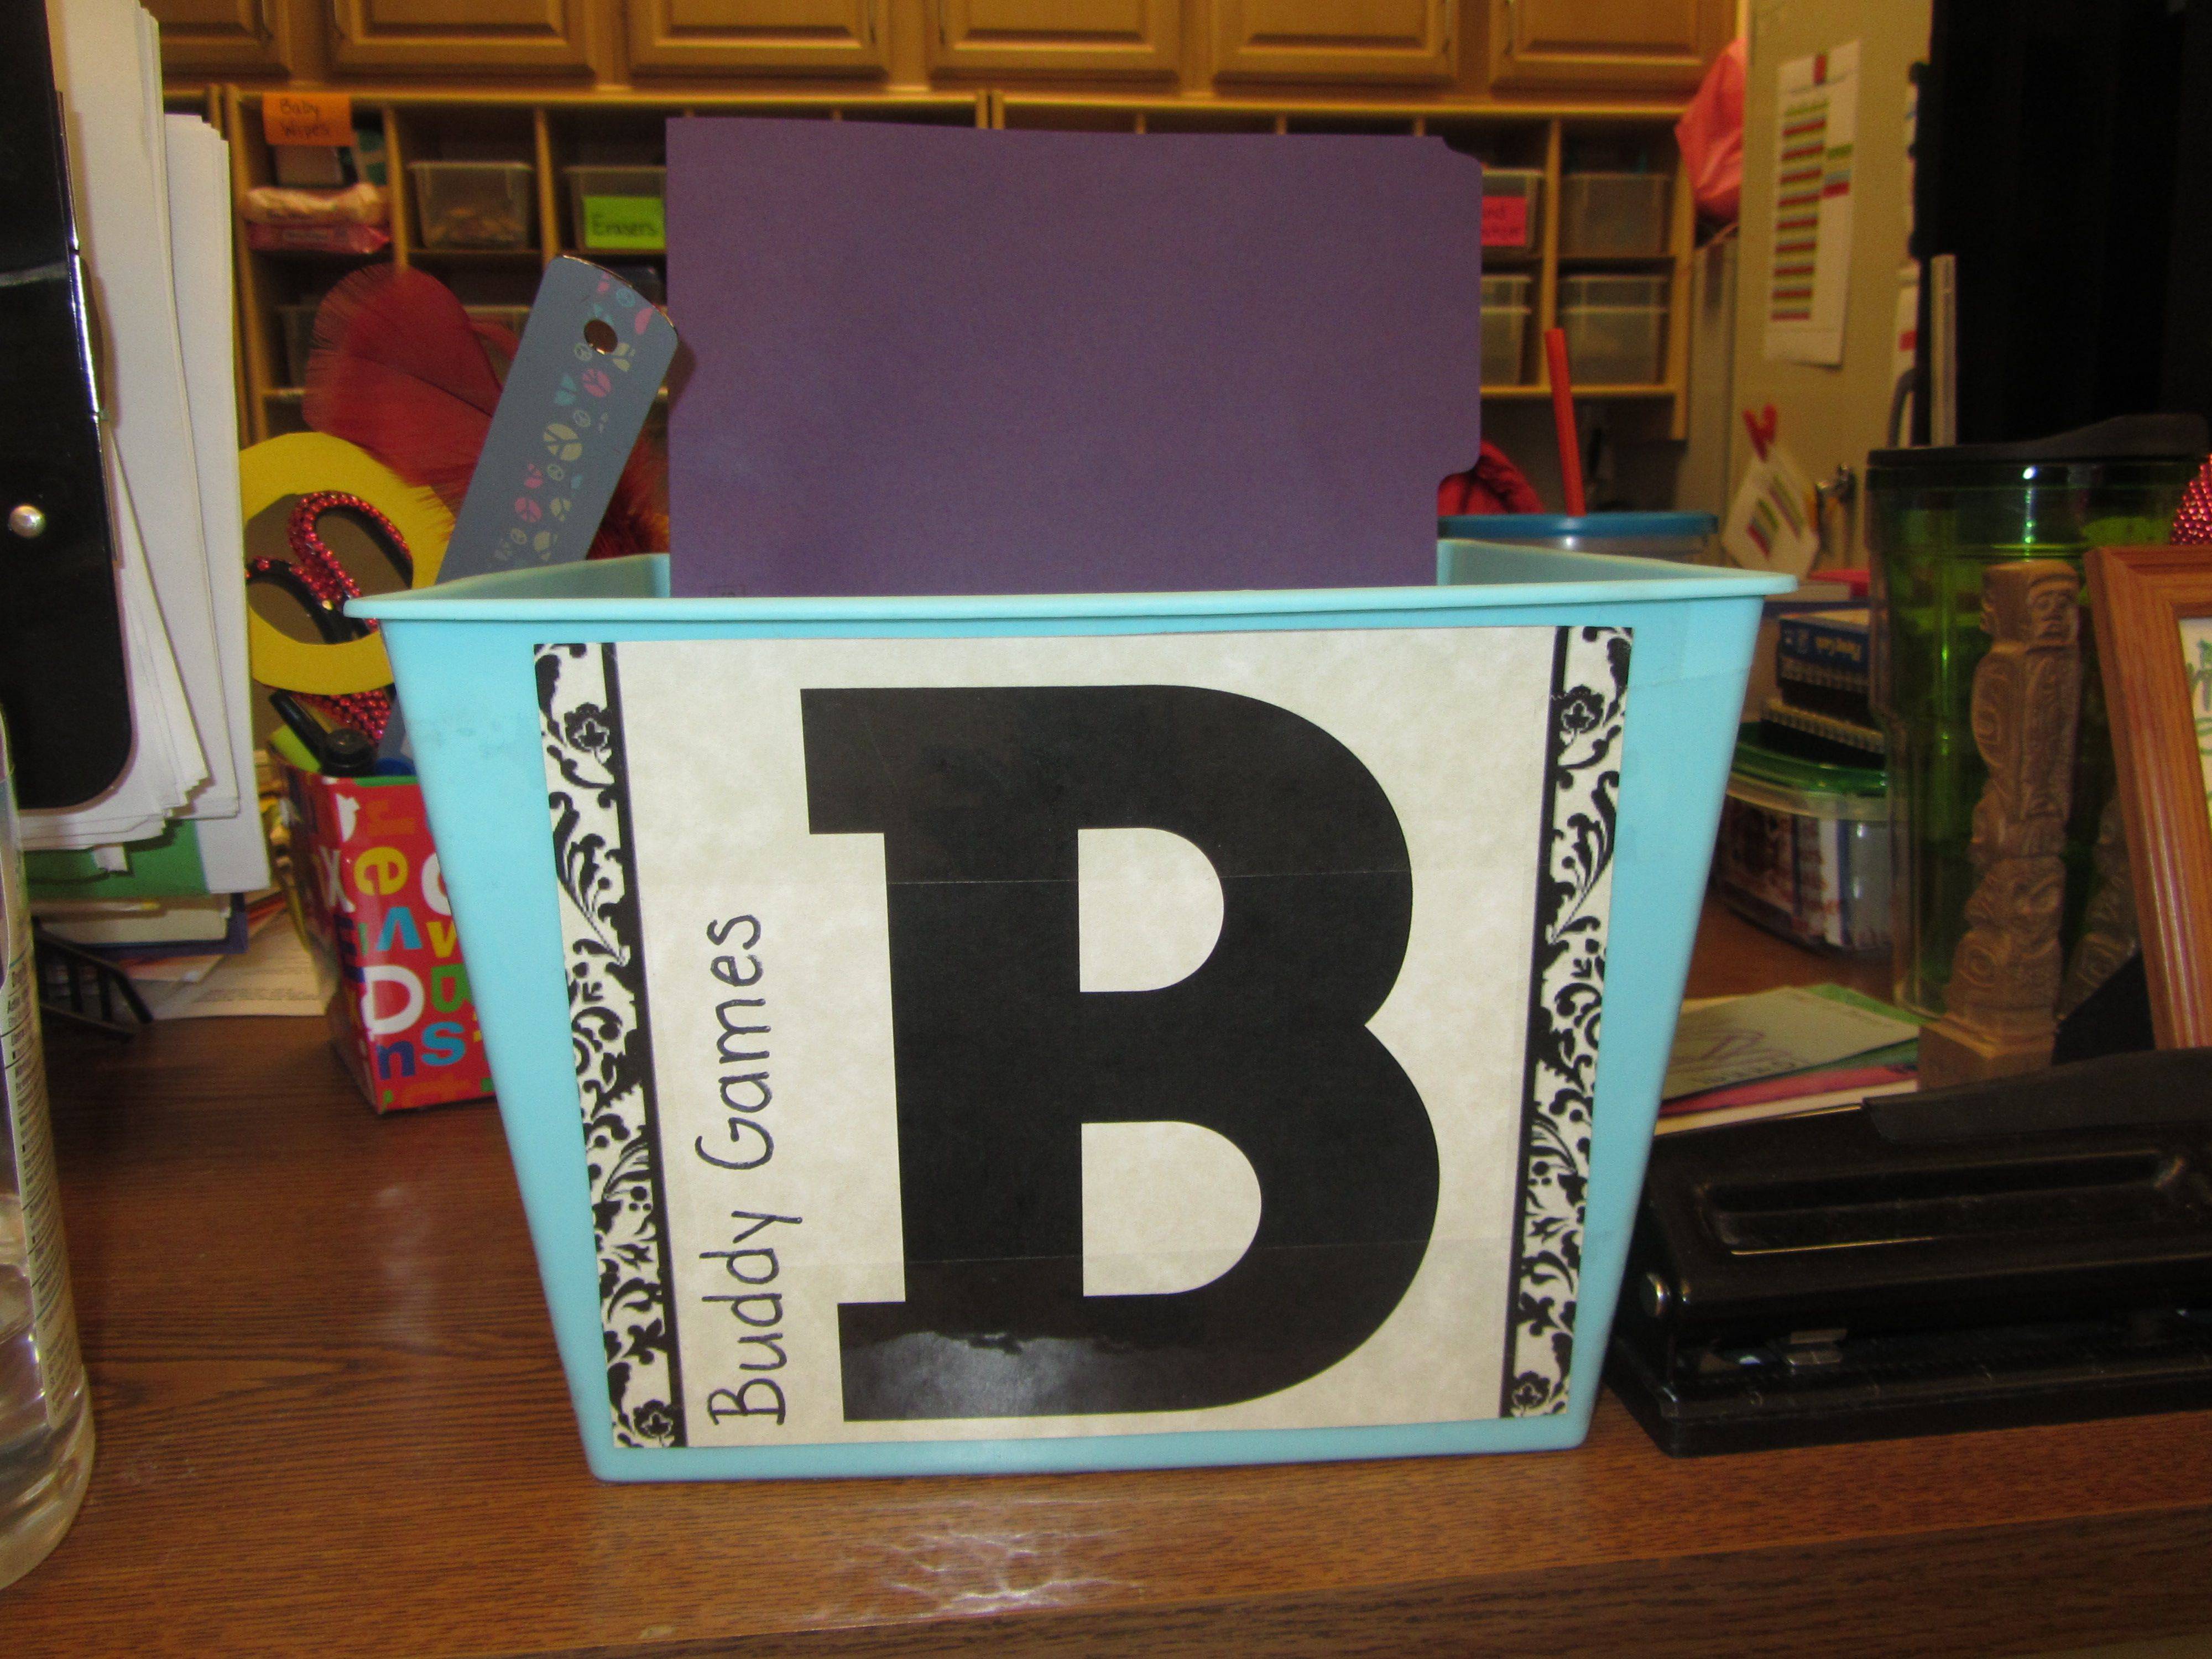 B Buddy Games This Bucket Includes Games Such As